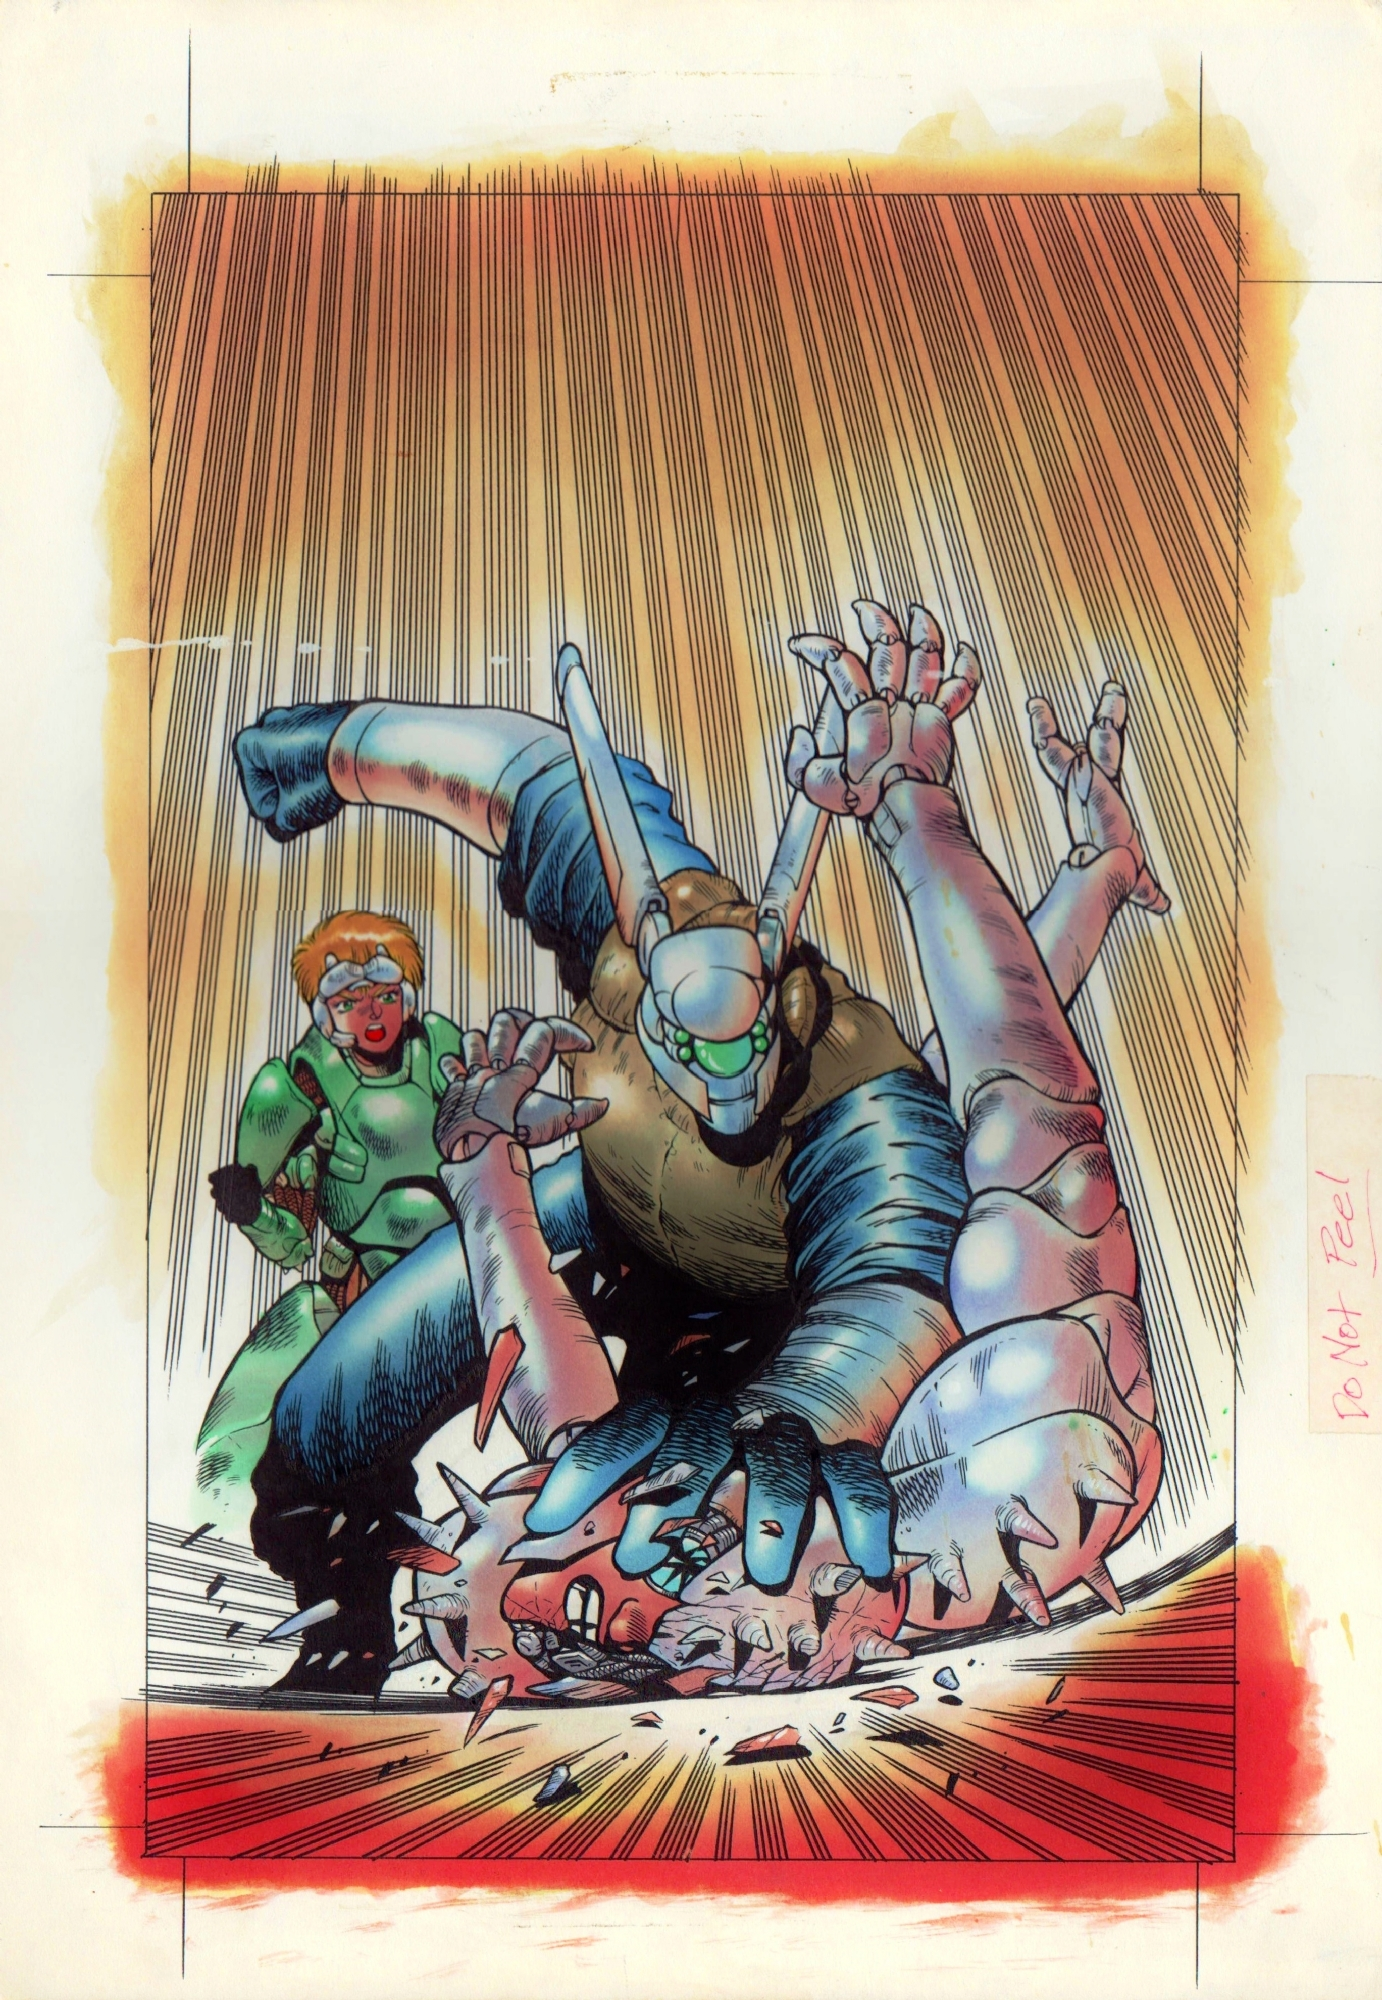 Appleseed Book Three Volume 4 Cover 1990 In James Meeley S Cool Stuff Miscellaneous Comic Art Gallery Room